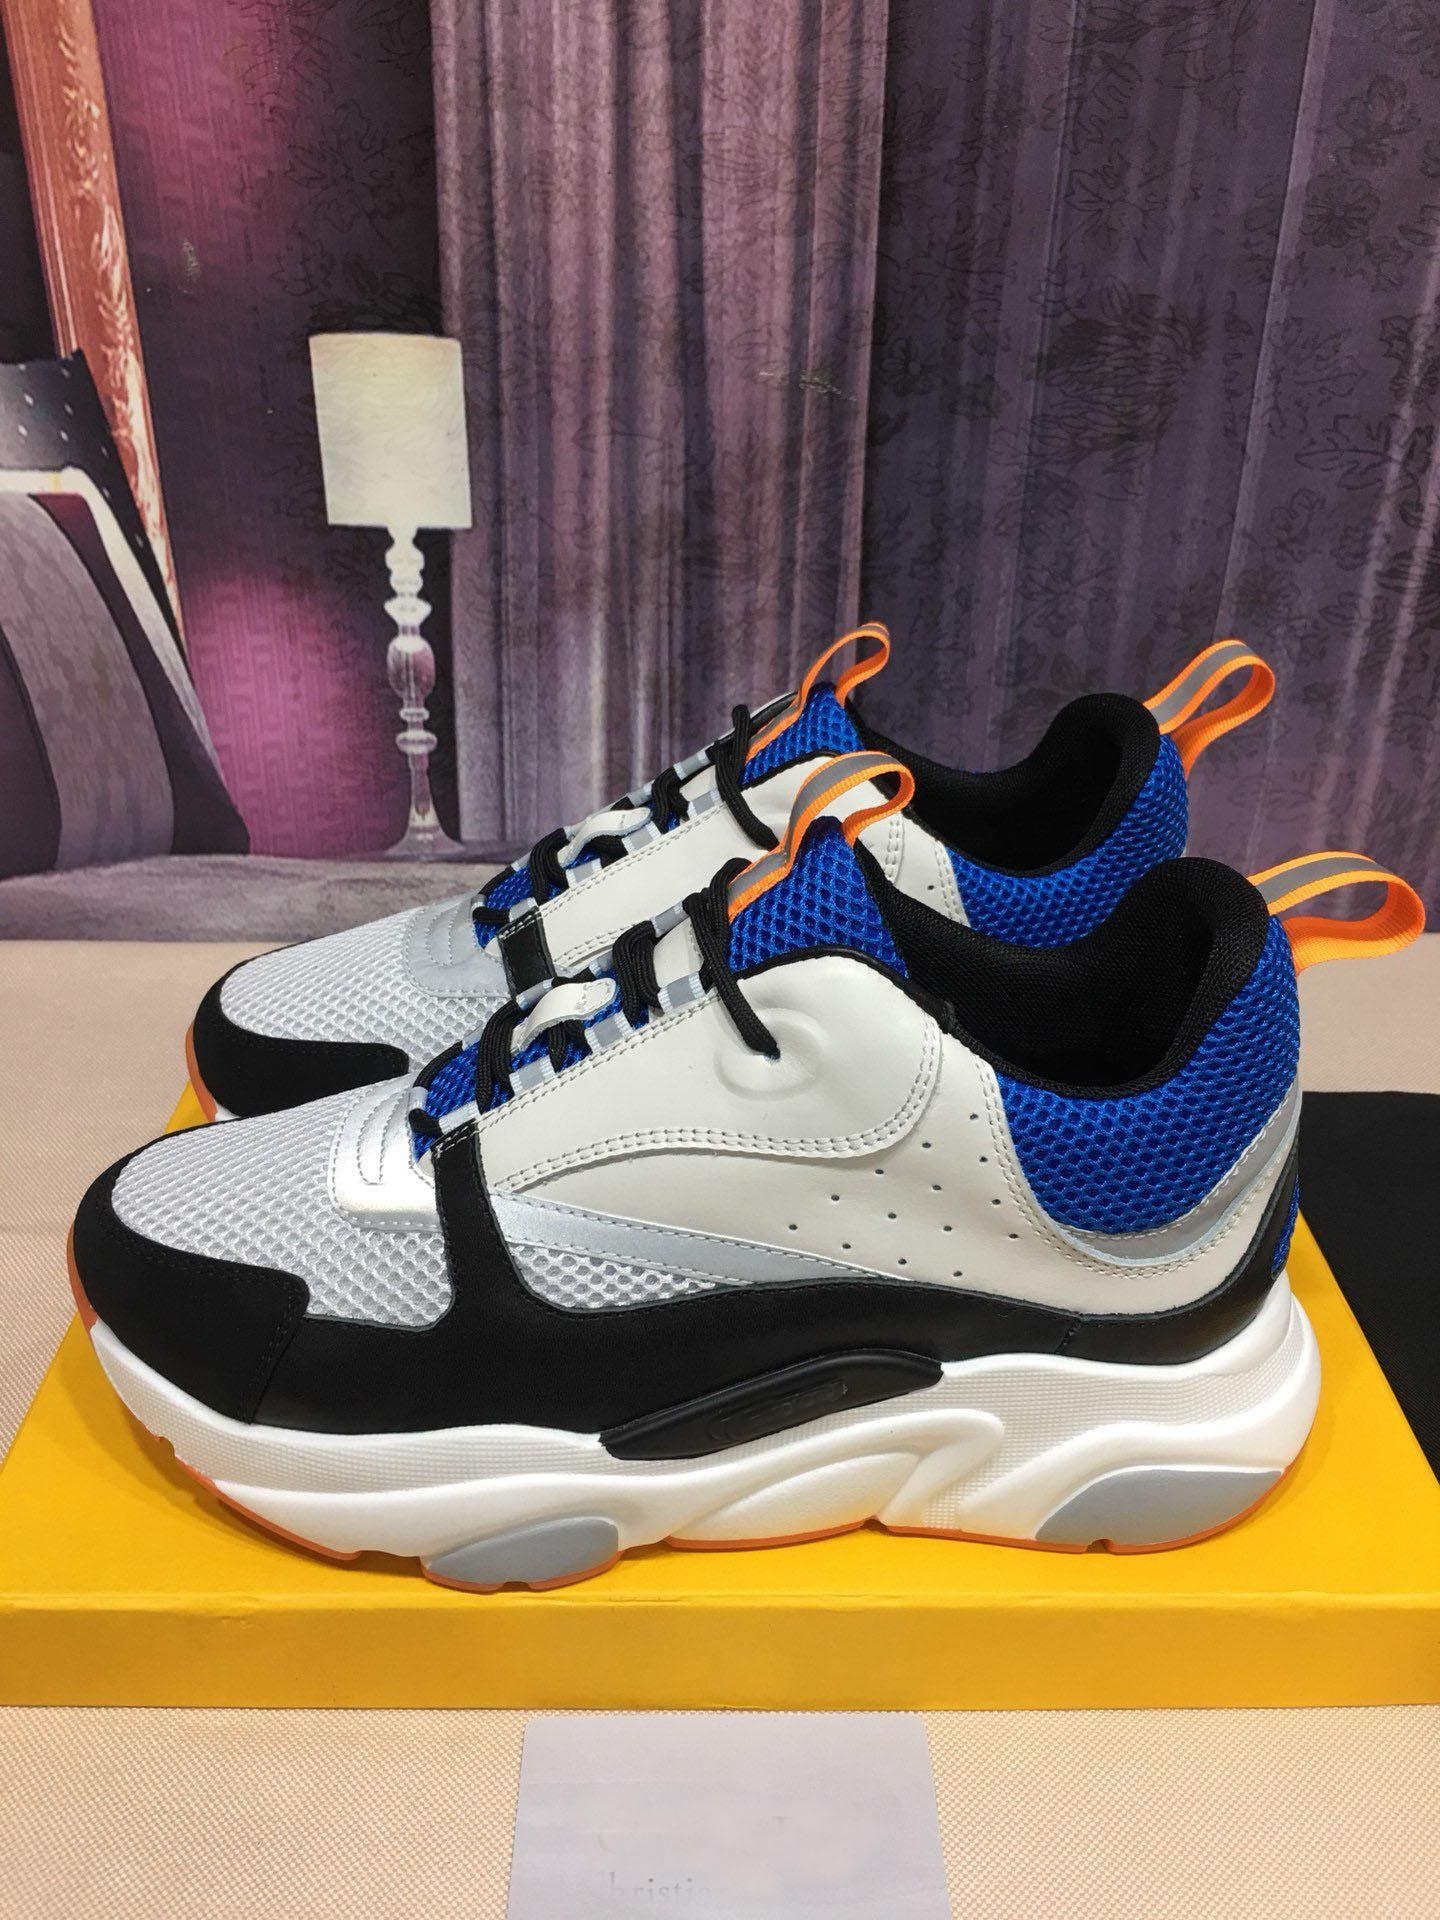 designer luxury wholesale bandage and cowhide mesh travel everyday breathable low top thick sole high rise sports casual shoes